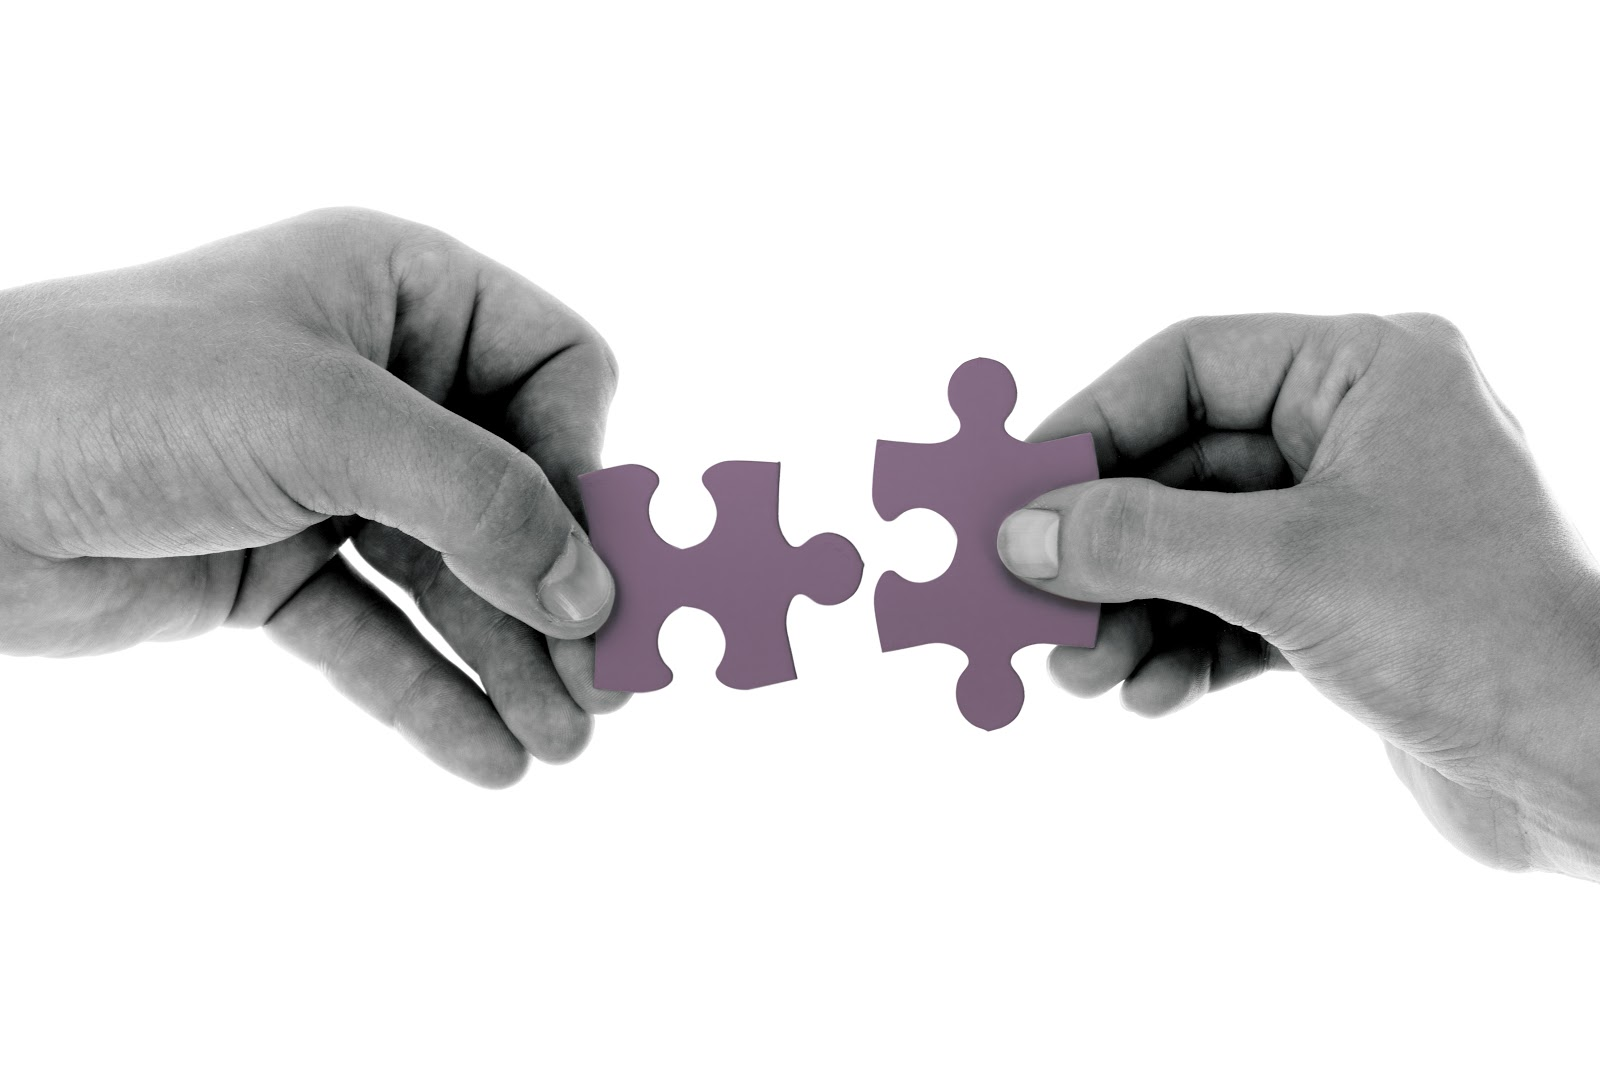 Valueable connections